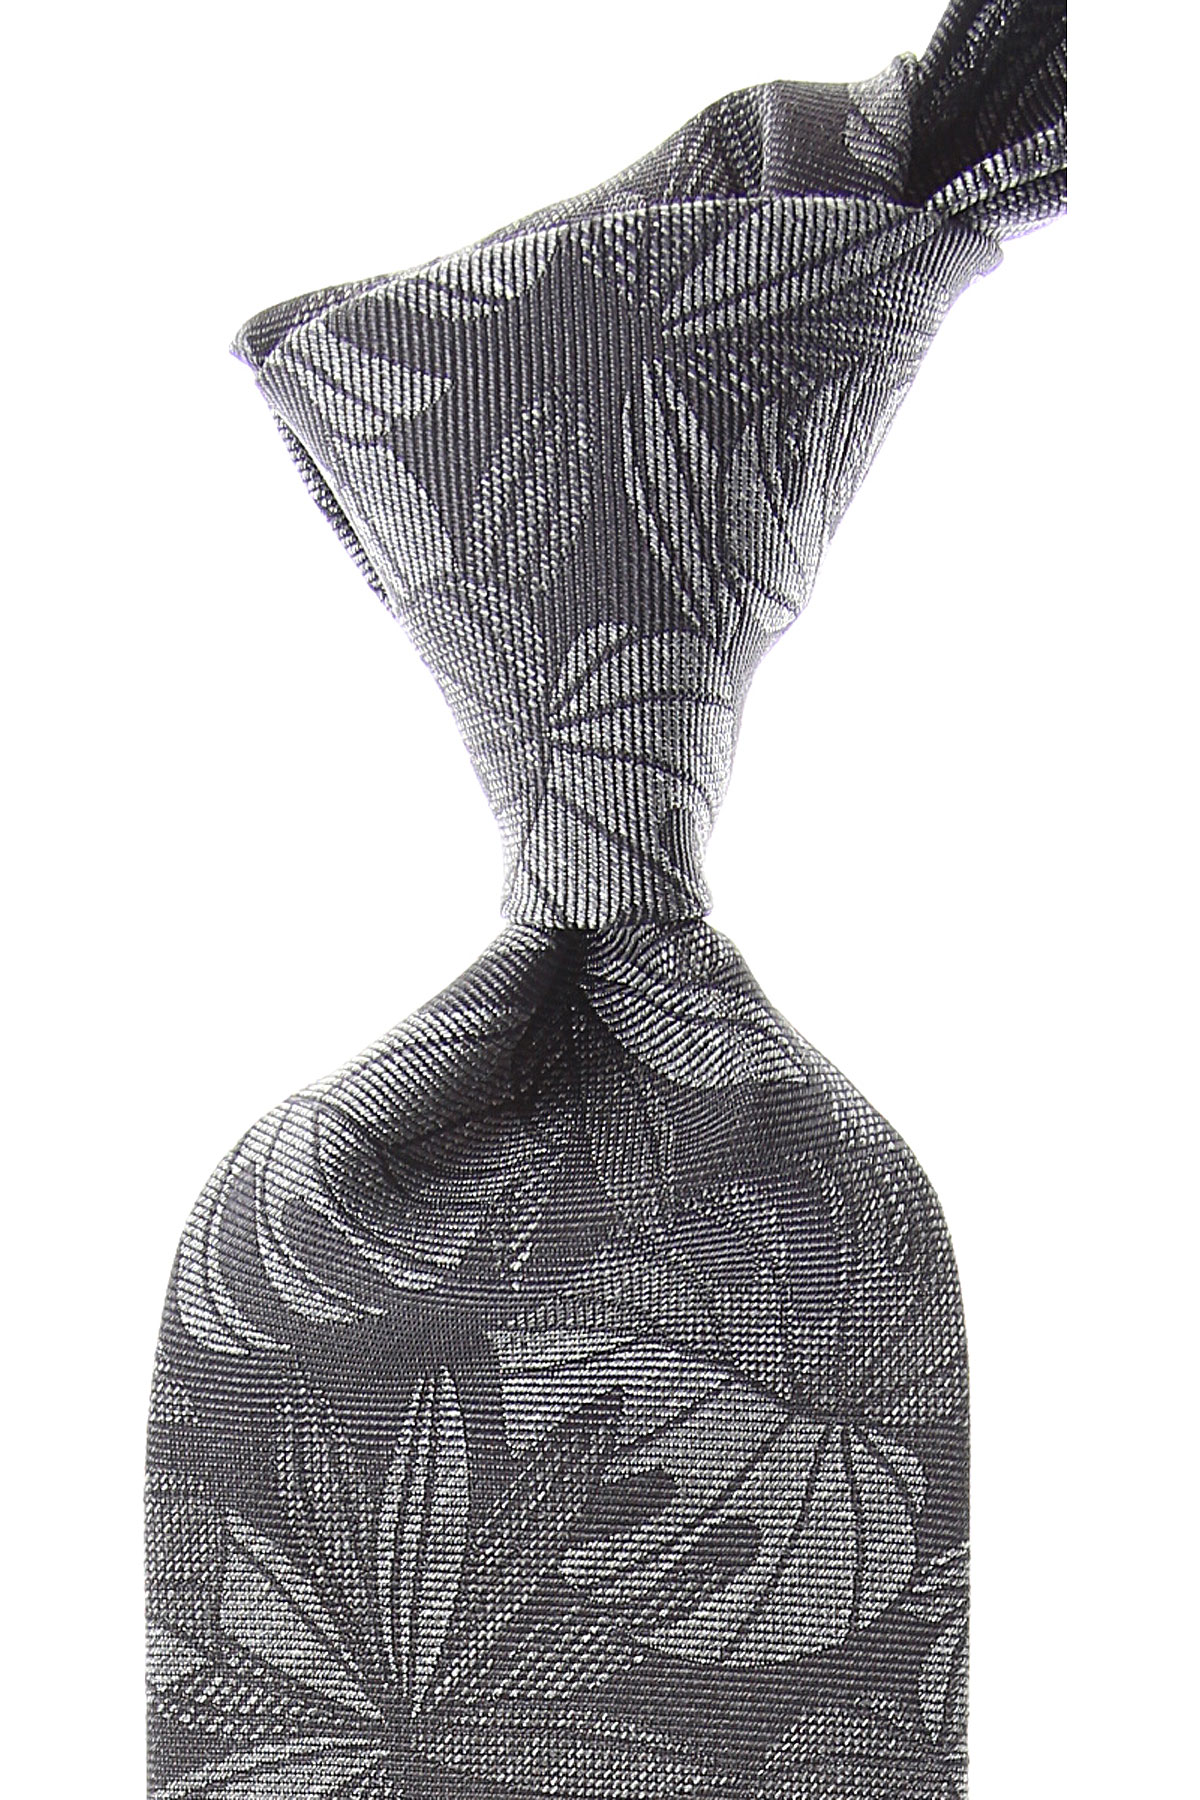 Ermenegildo_Zegna_Ties_On_Sale_Anthracite_Grey_Silk_2019